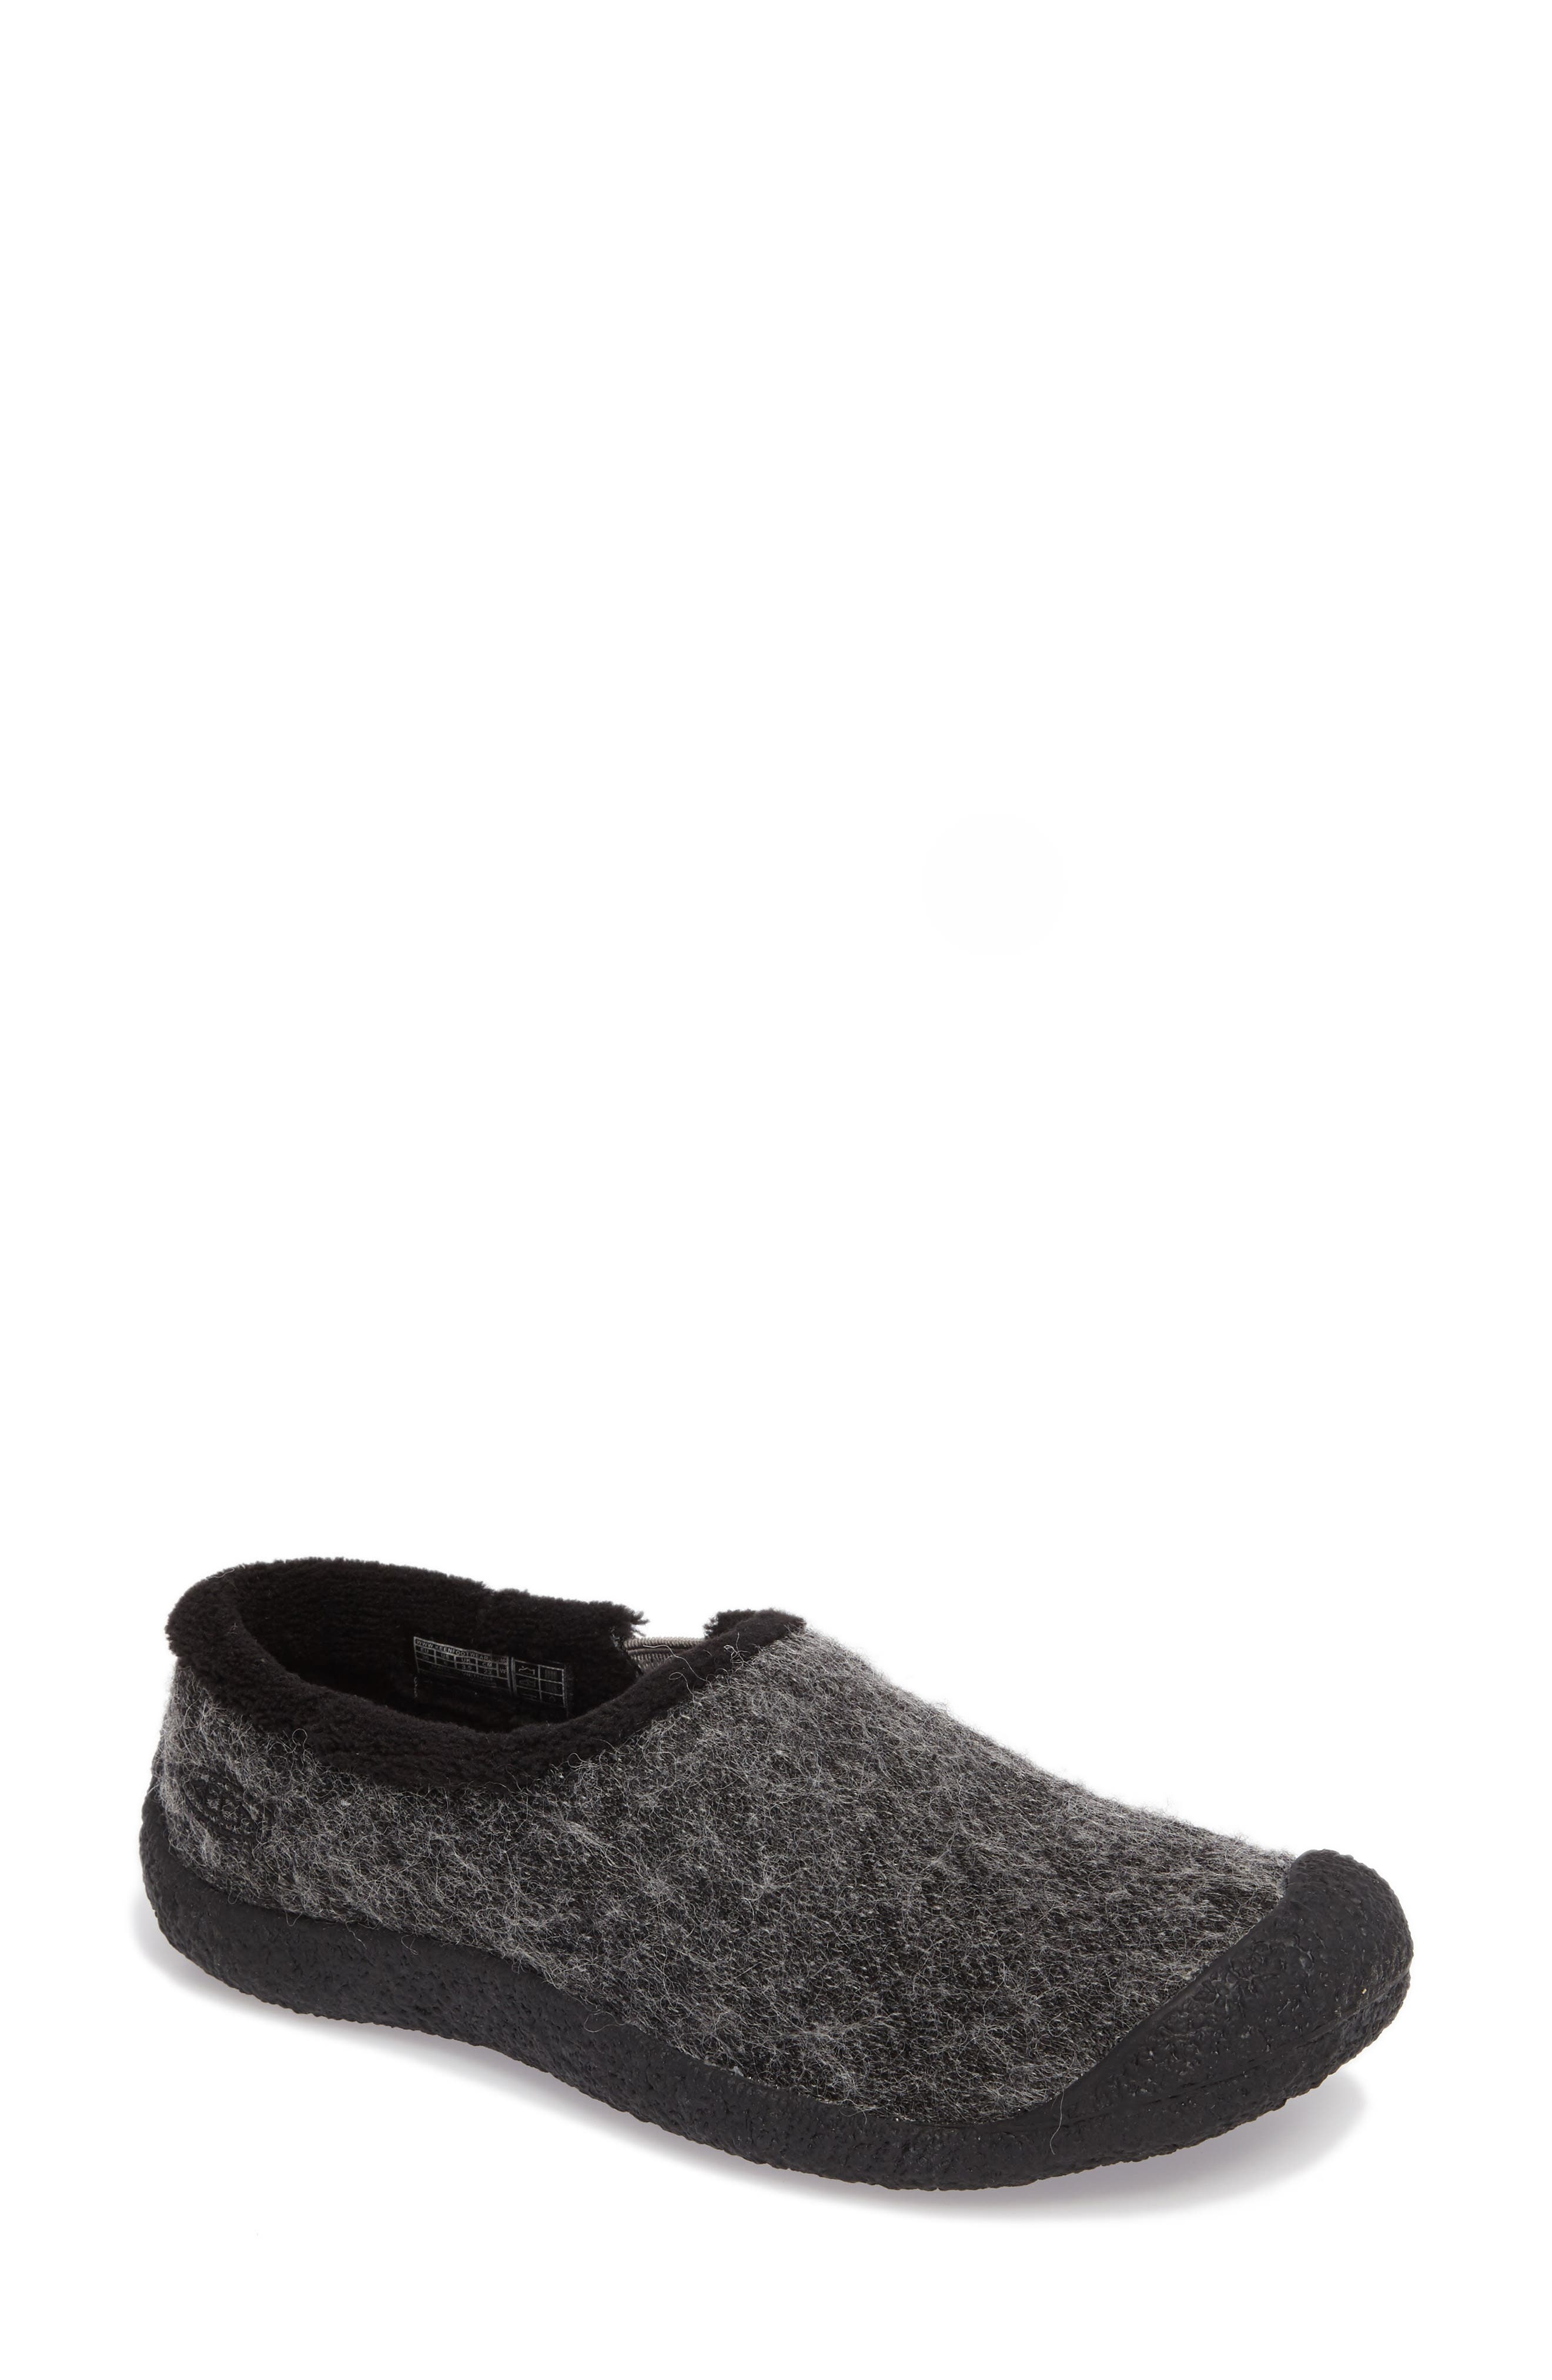 Howser Round Toe Wool Slip-on,                         Main,                         color, 001